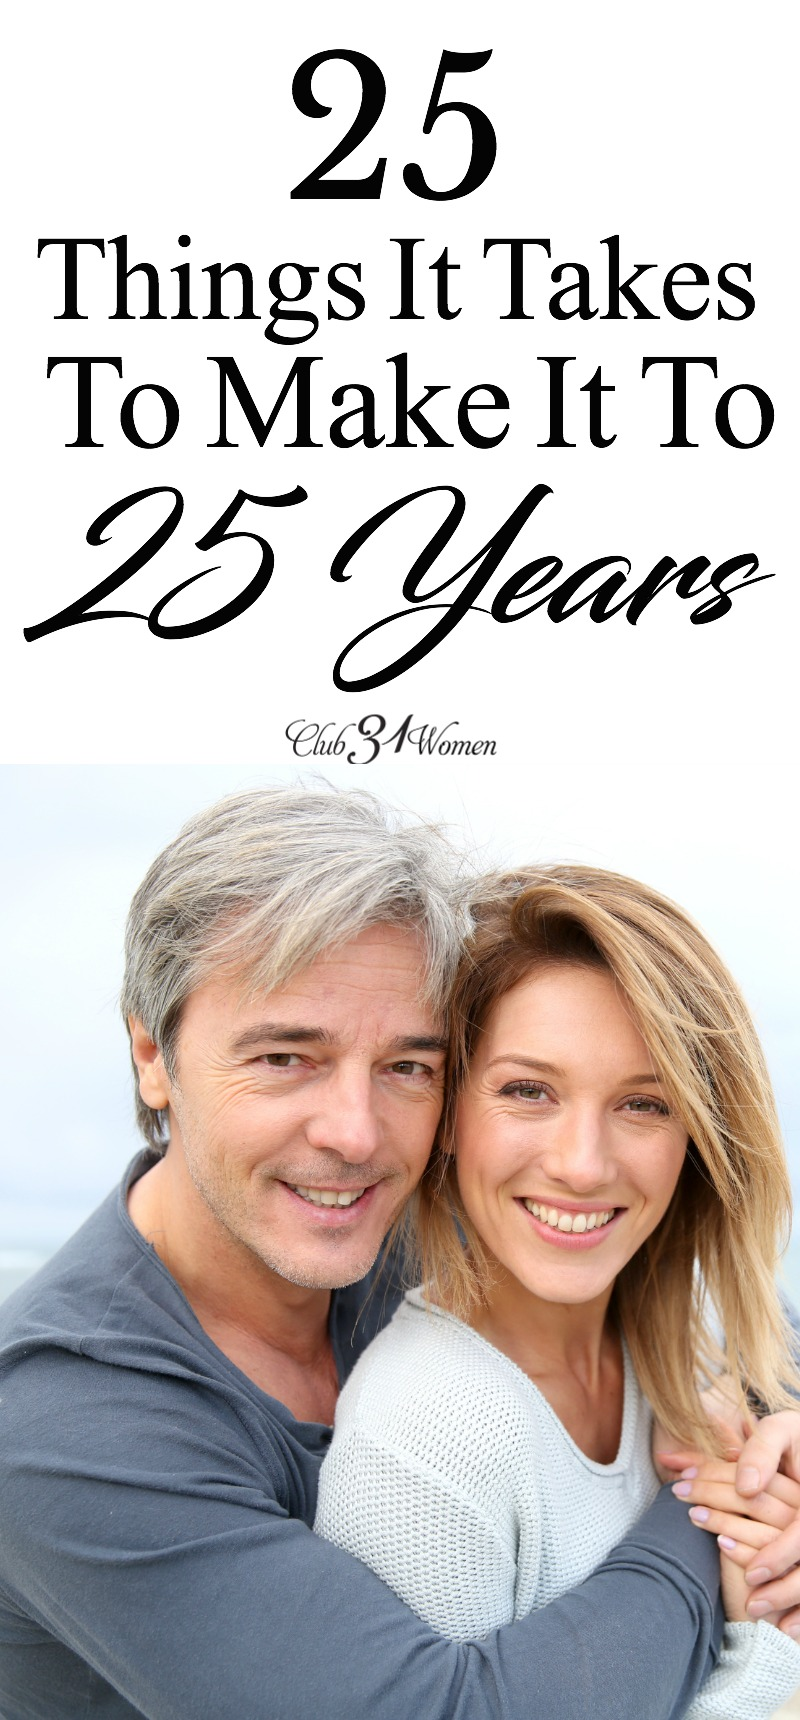 What does it take to make it to 25 years of marriage? Is it something that happens by chance? Can you rely on the feelings of love alone? via @Club31Women